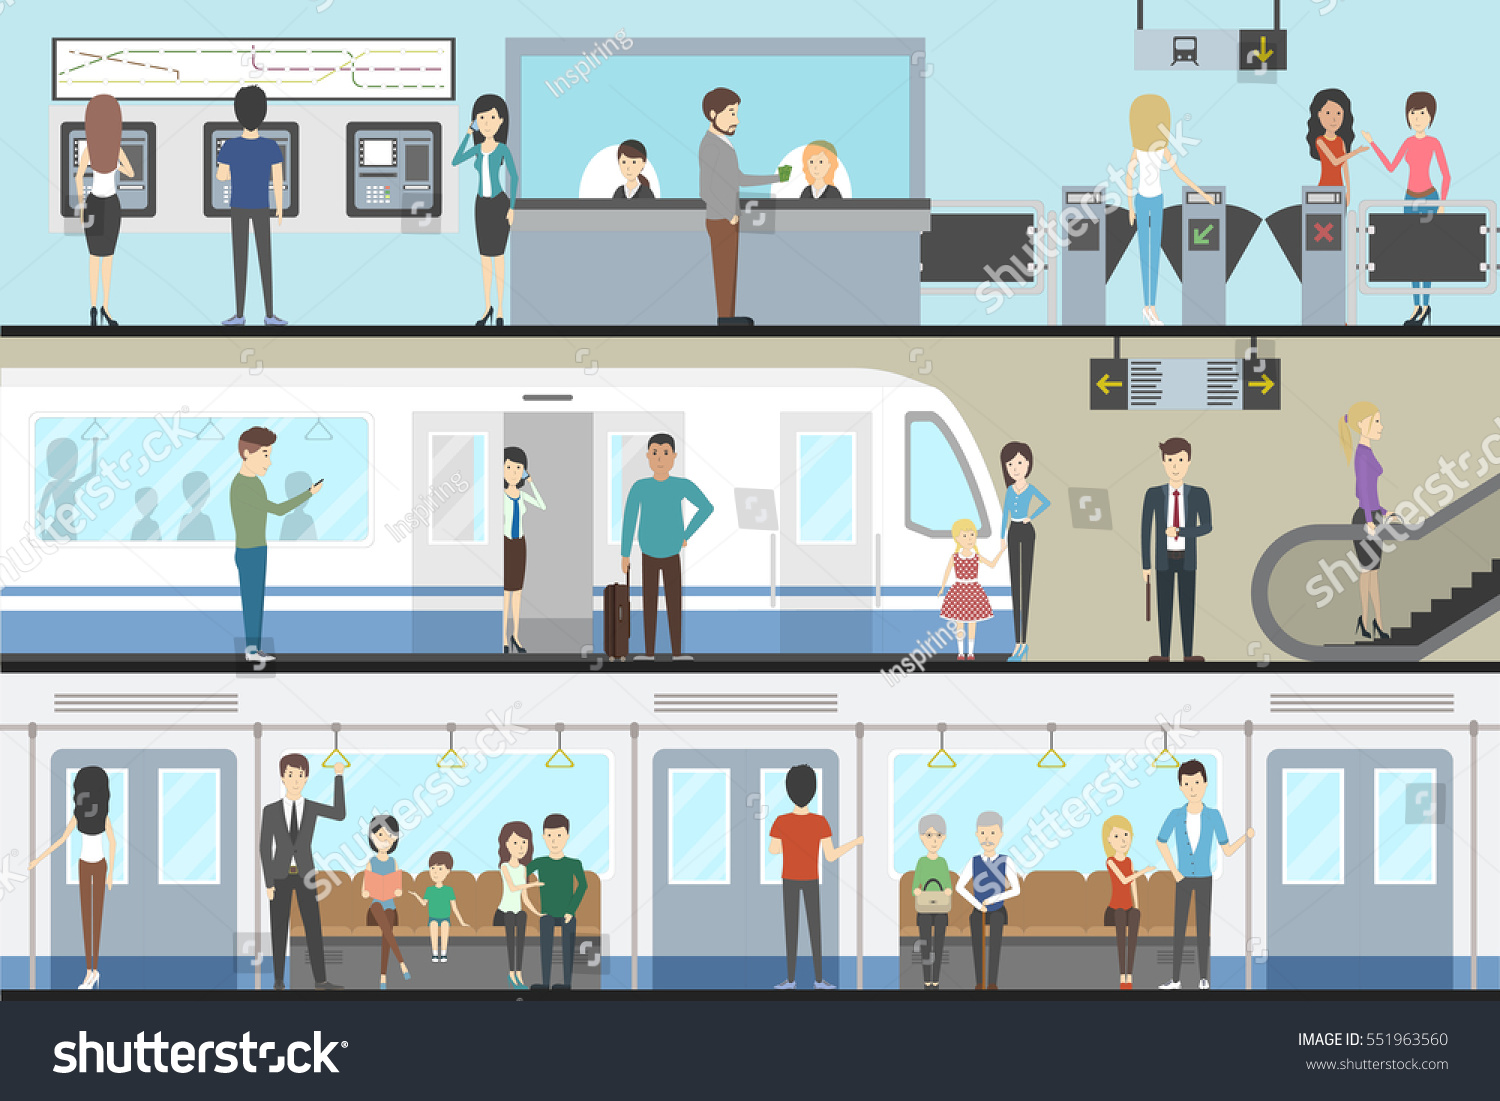 subway interior set train enter inside stock vector 551963560 shutterstock. Black Bedroom Furniture Sets. Home Design Ideas